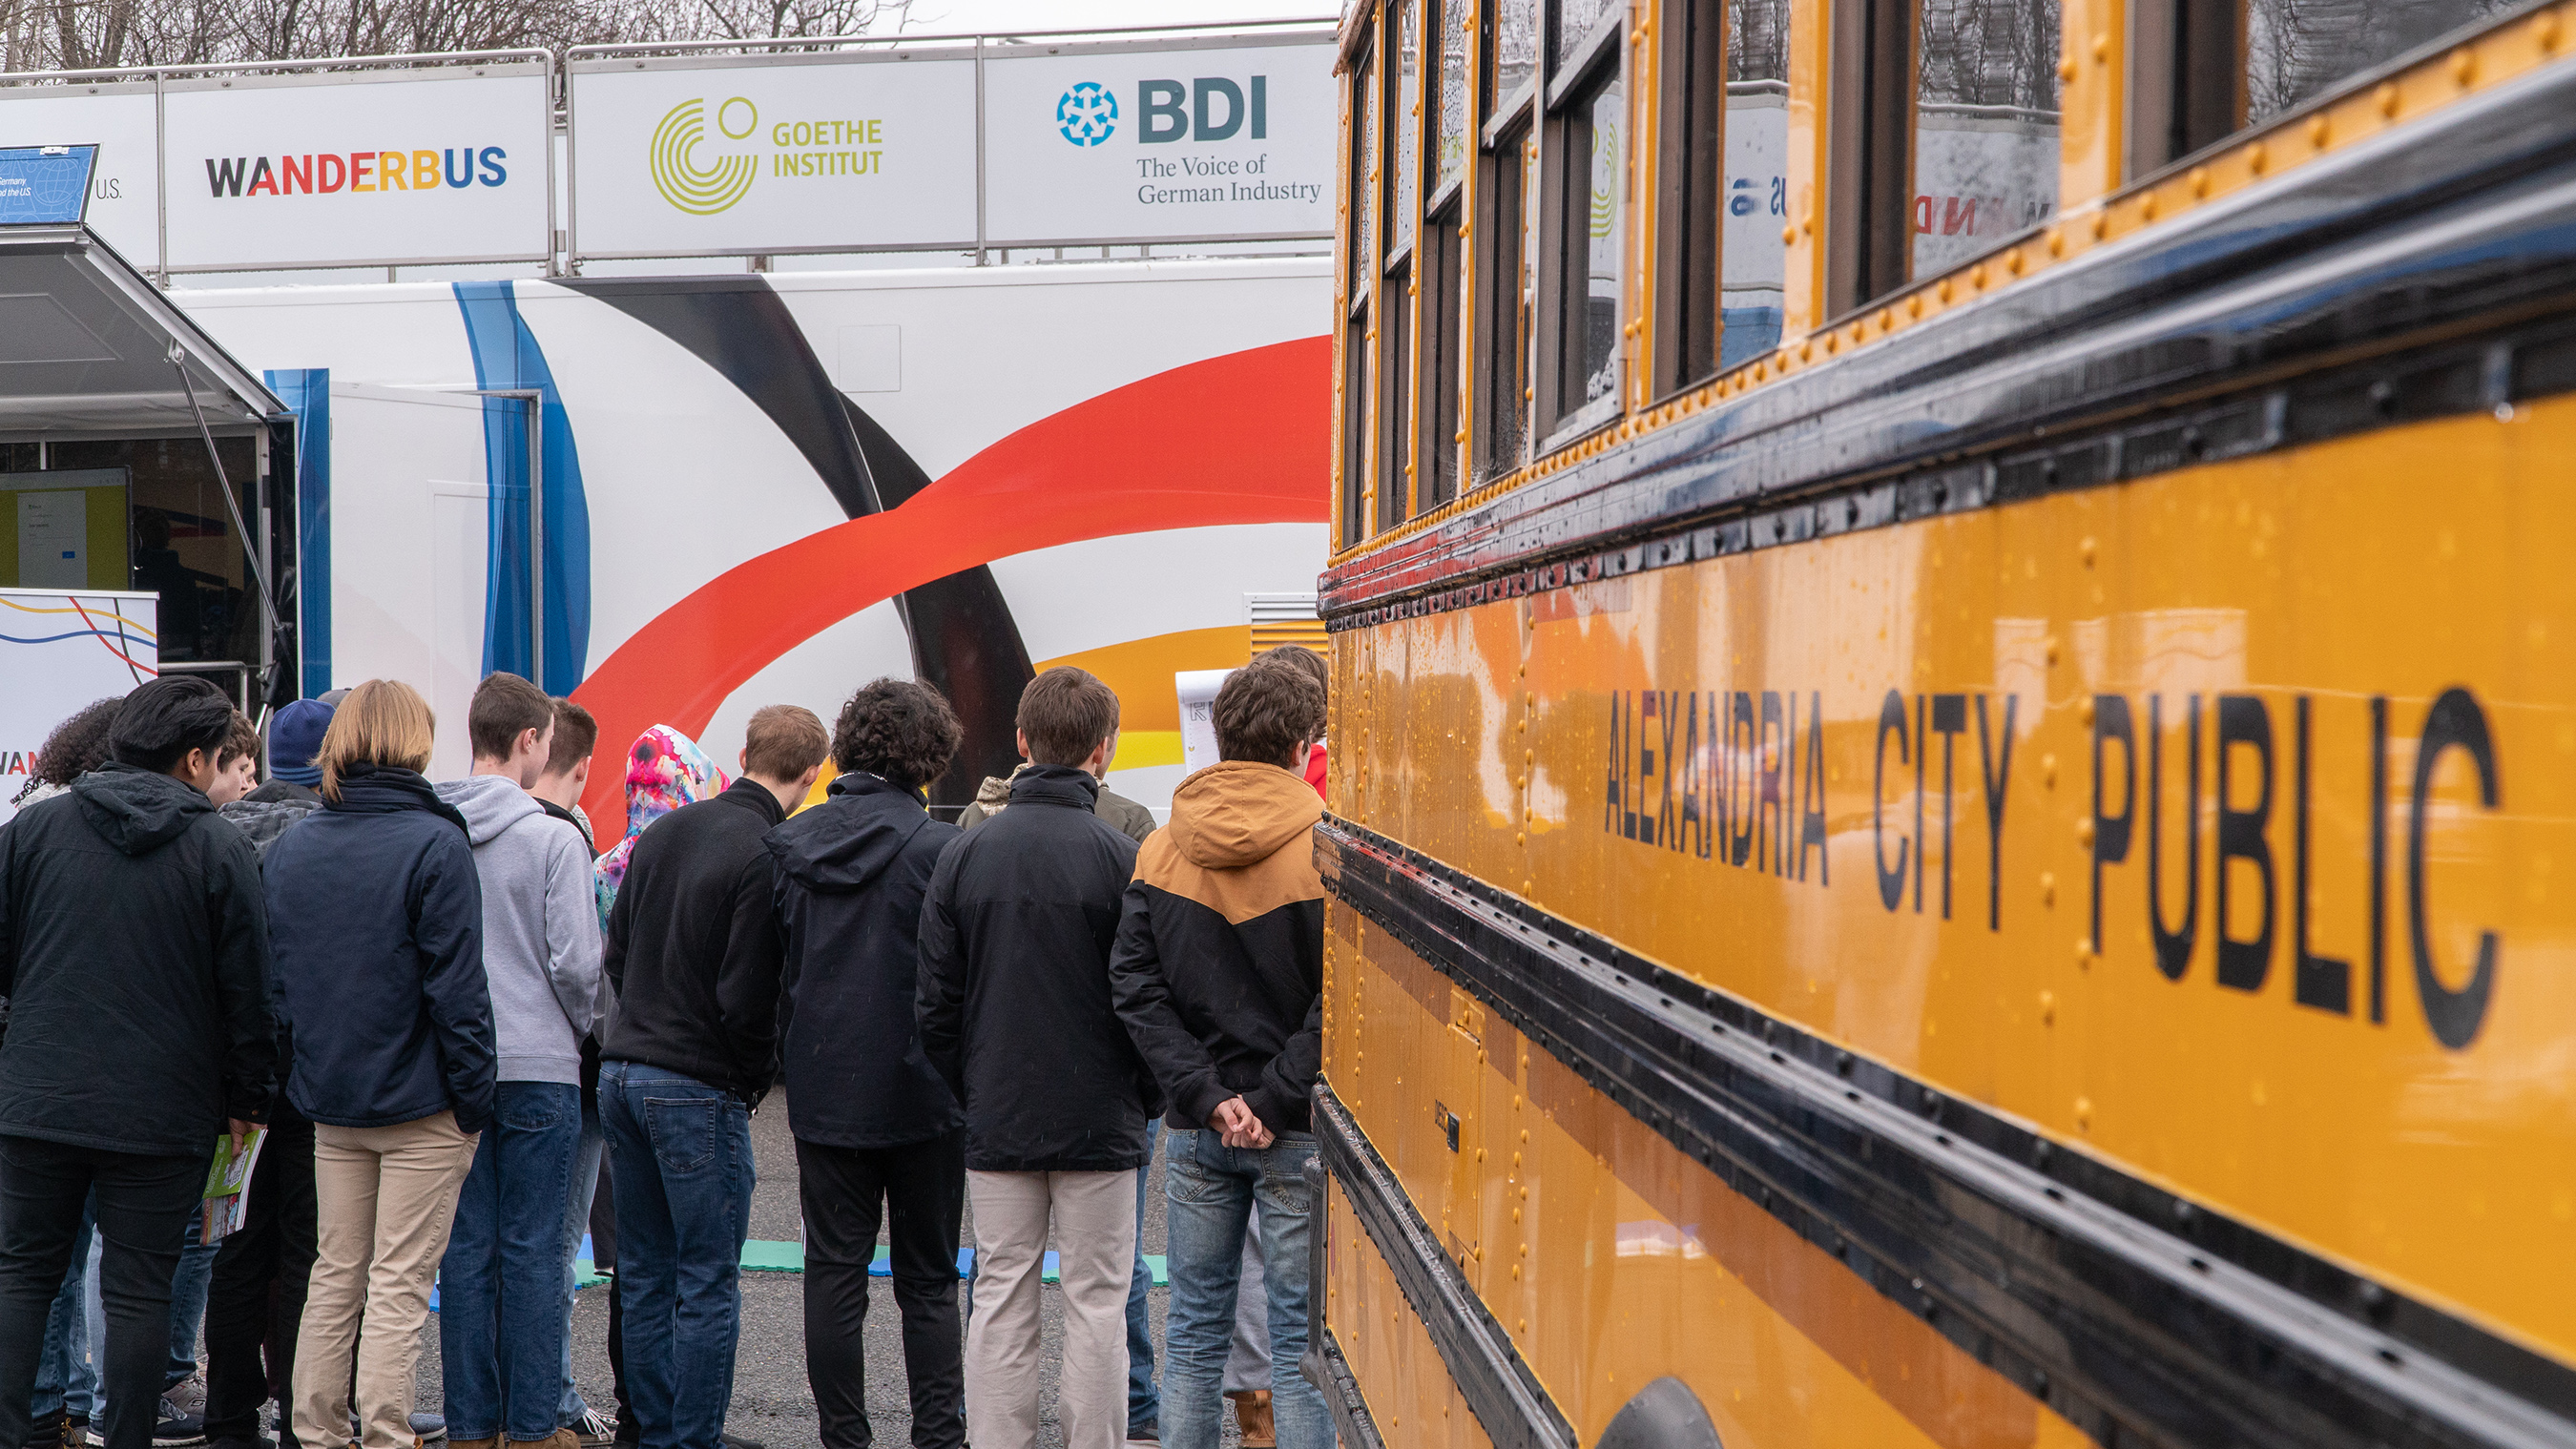 WanderbUS will visit over 60 schools in 48 states